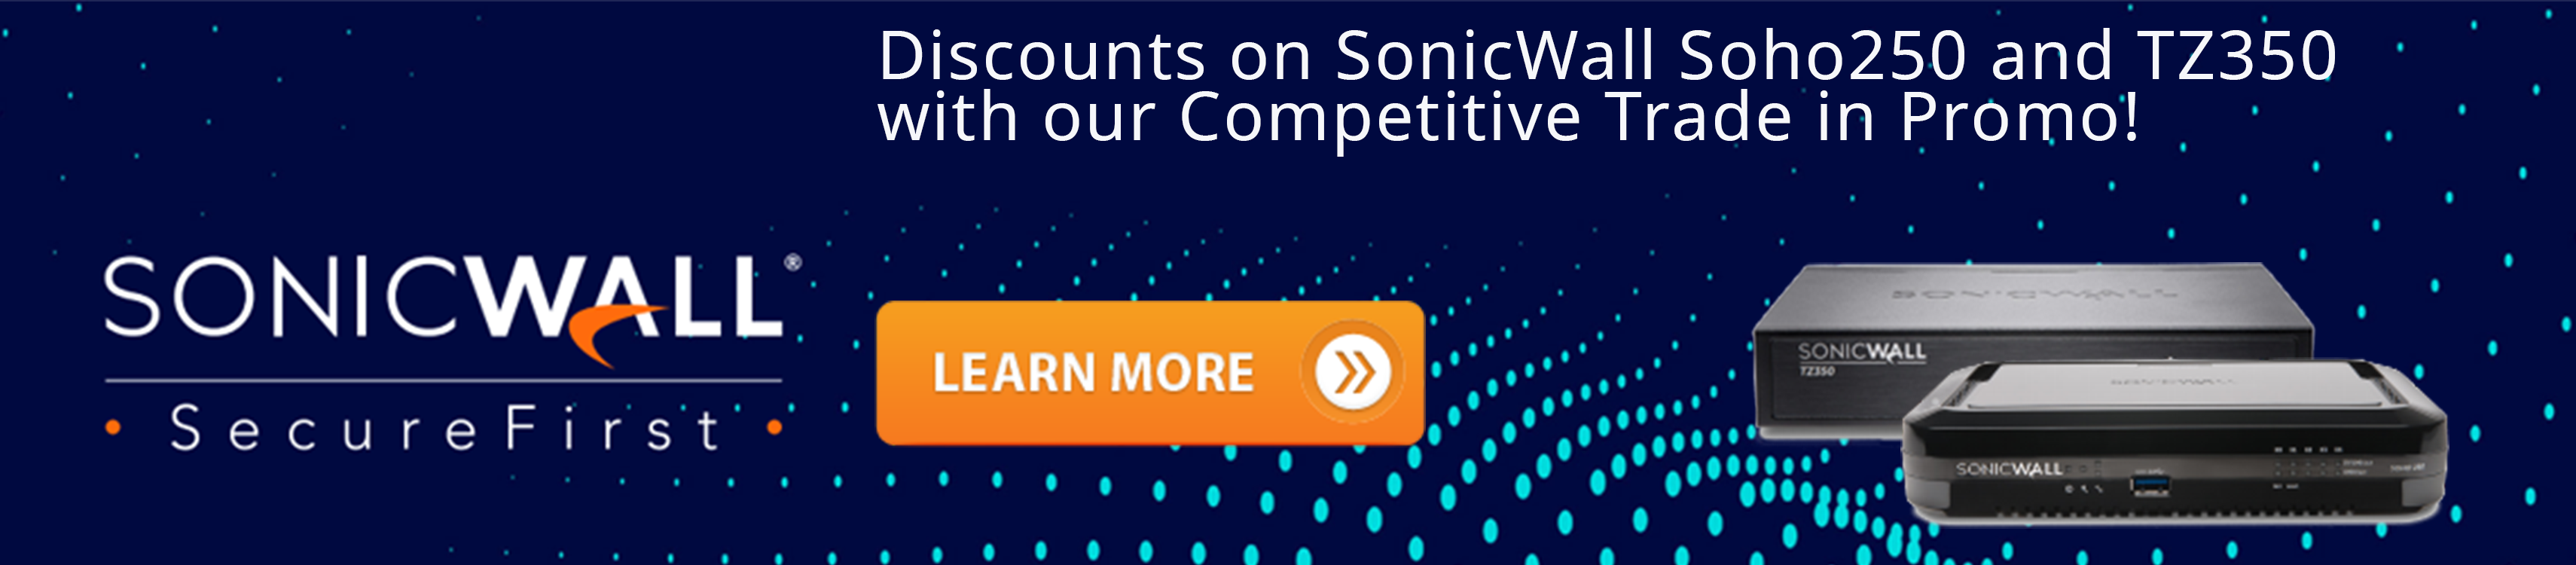 SonicWall Soho250 and TZ350 Competitive Trade In Promo